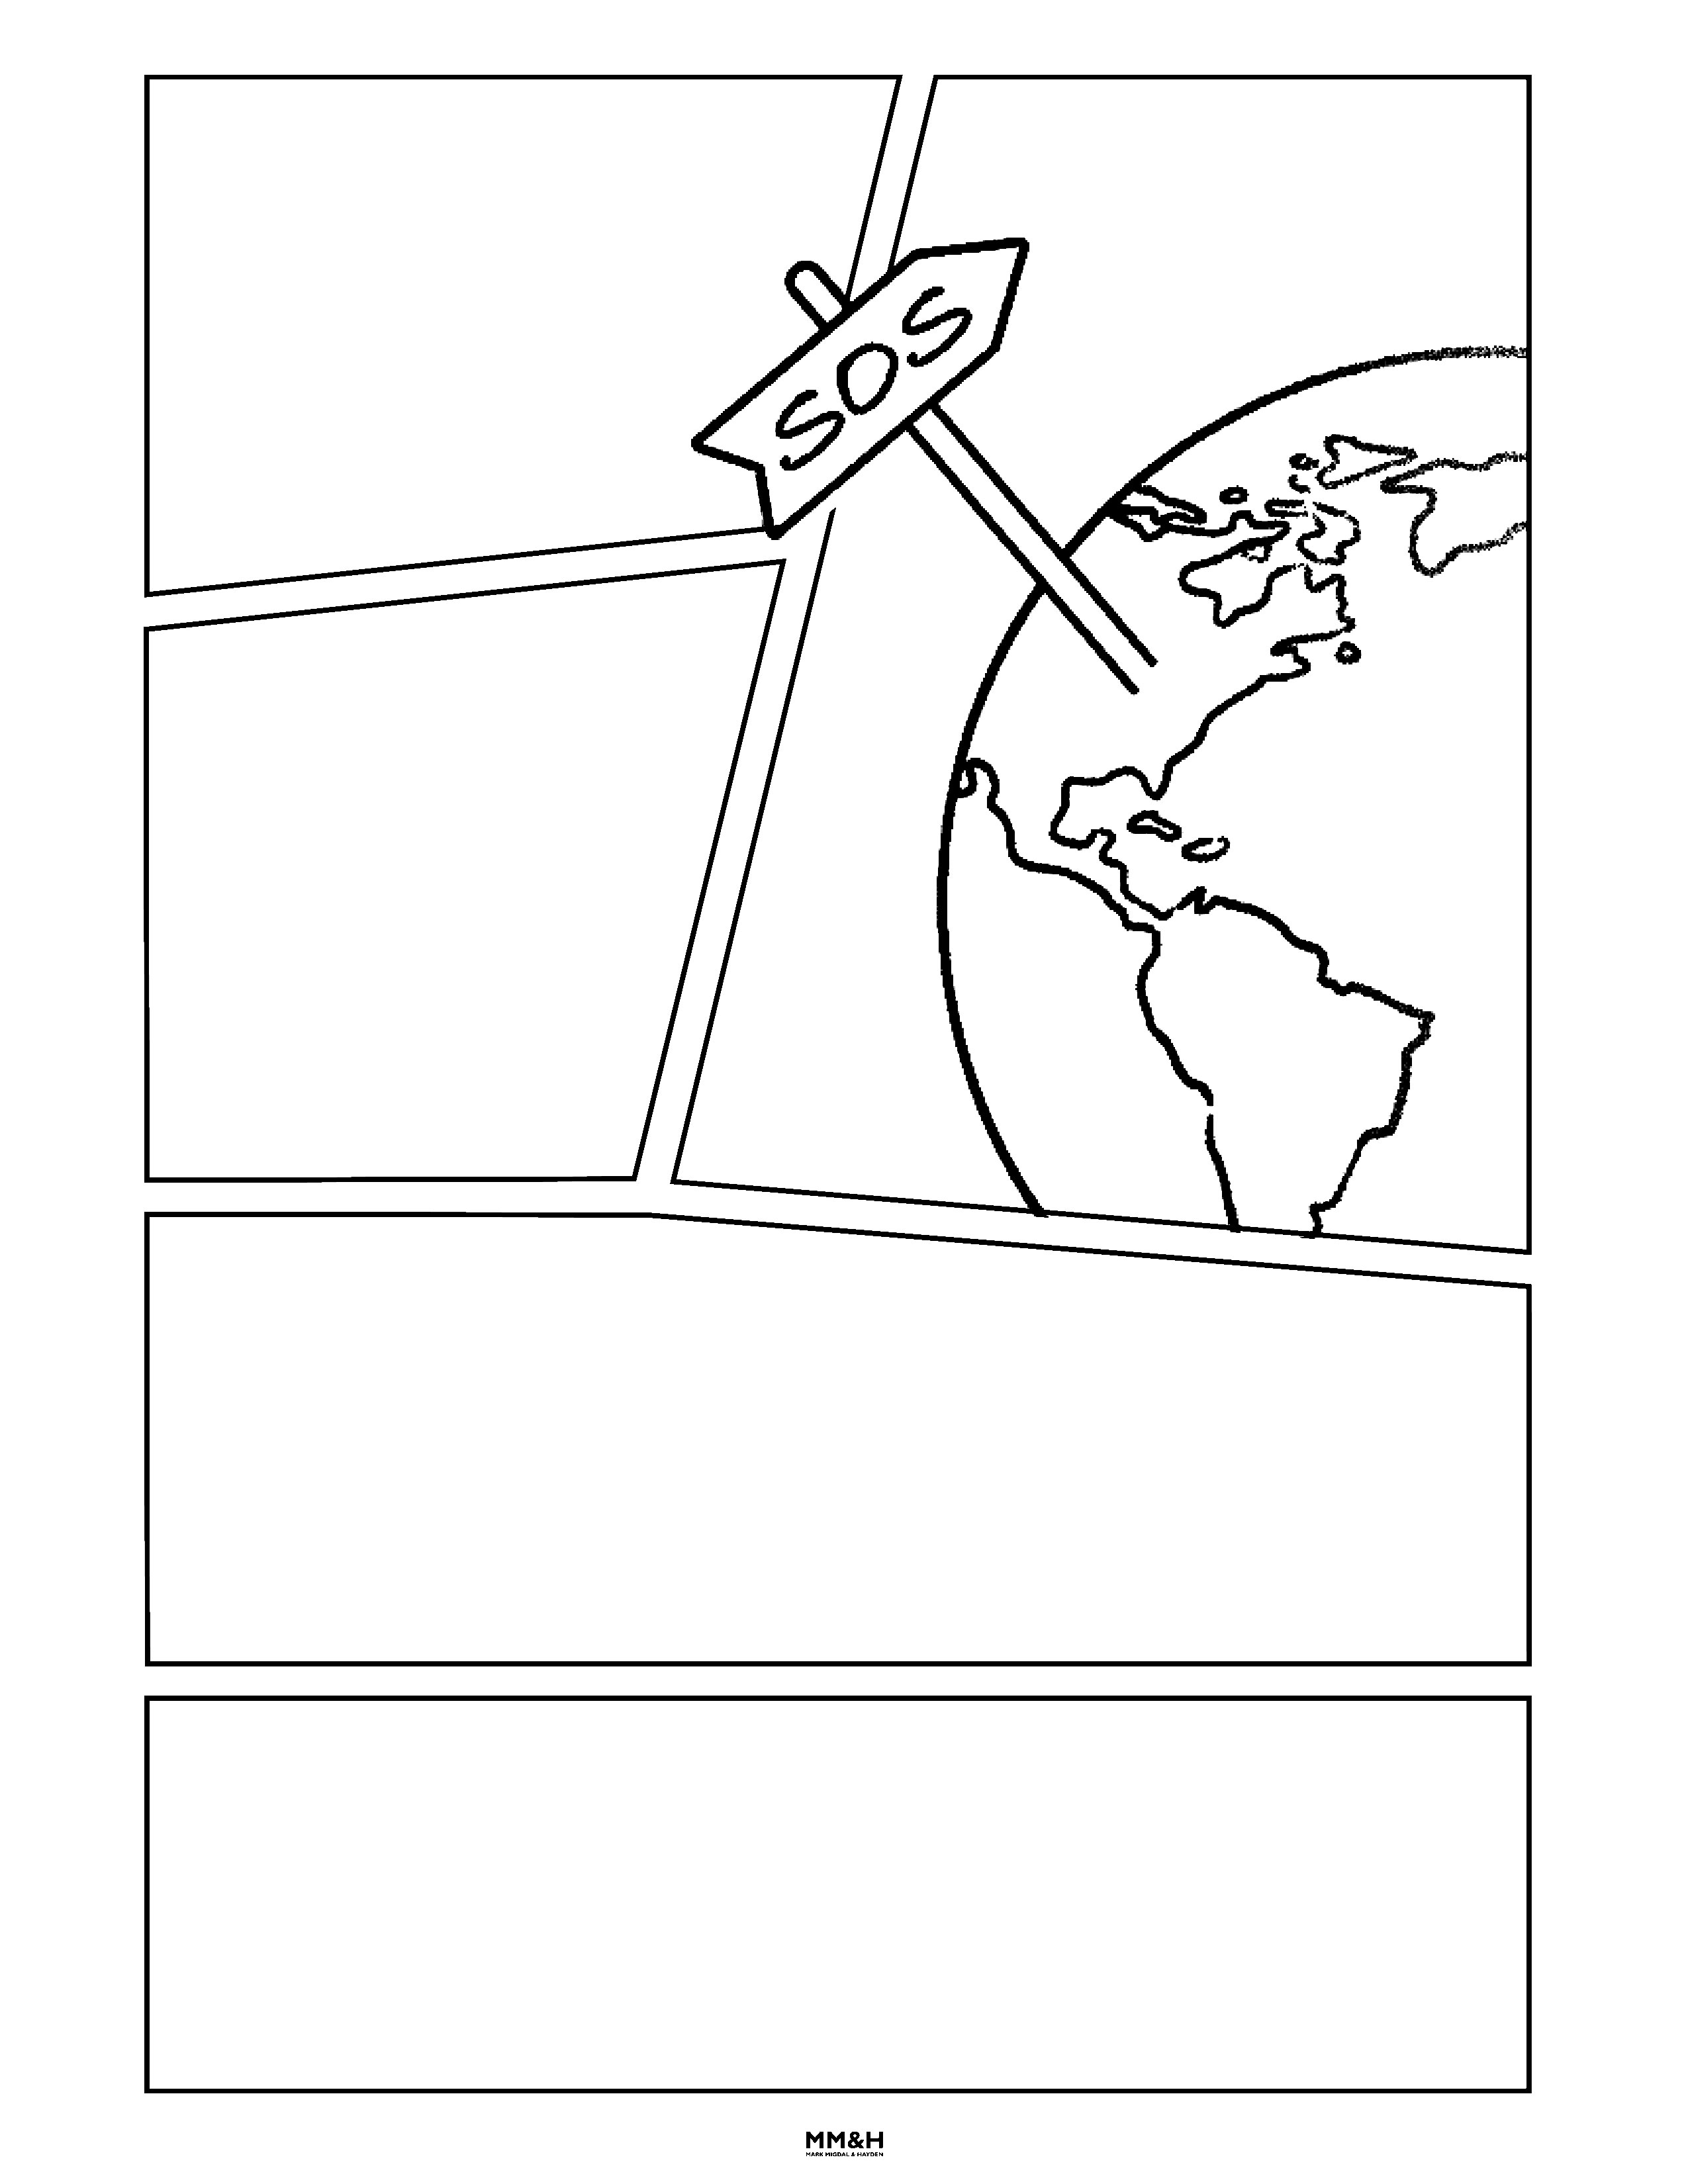 Comic-challenge-page-5 download